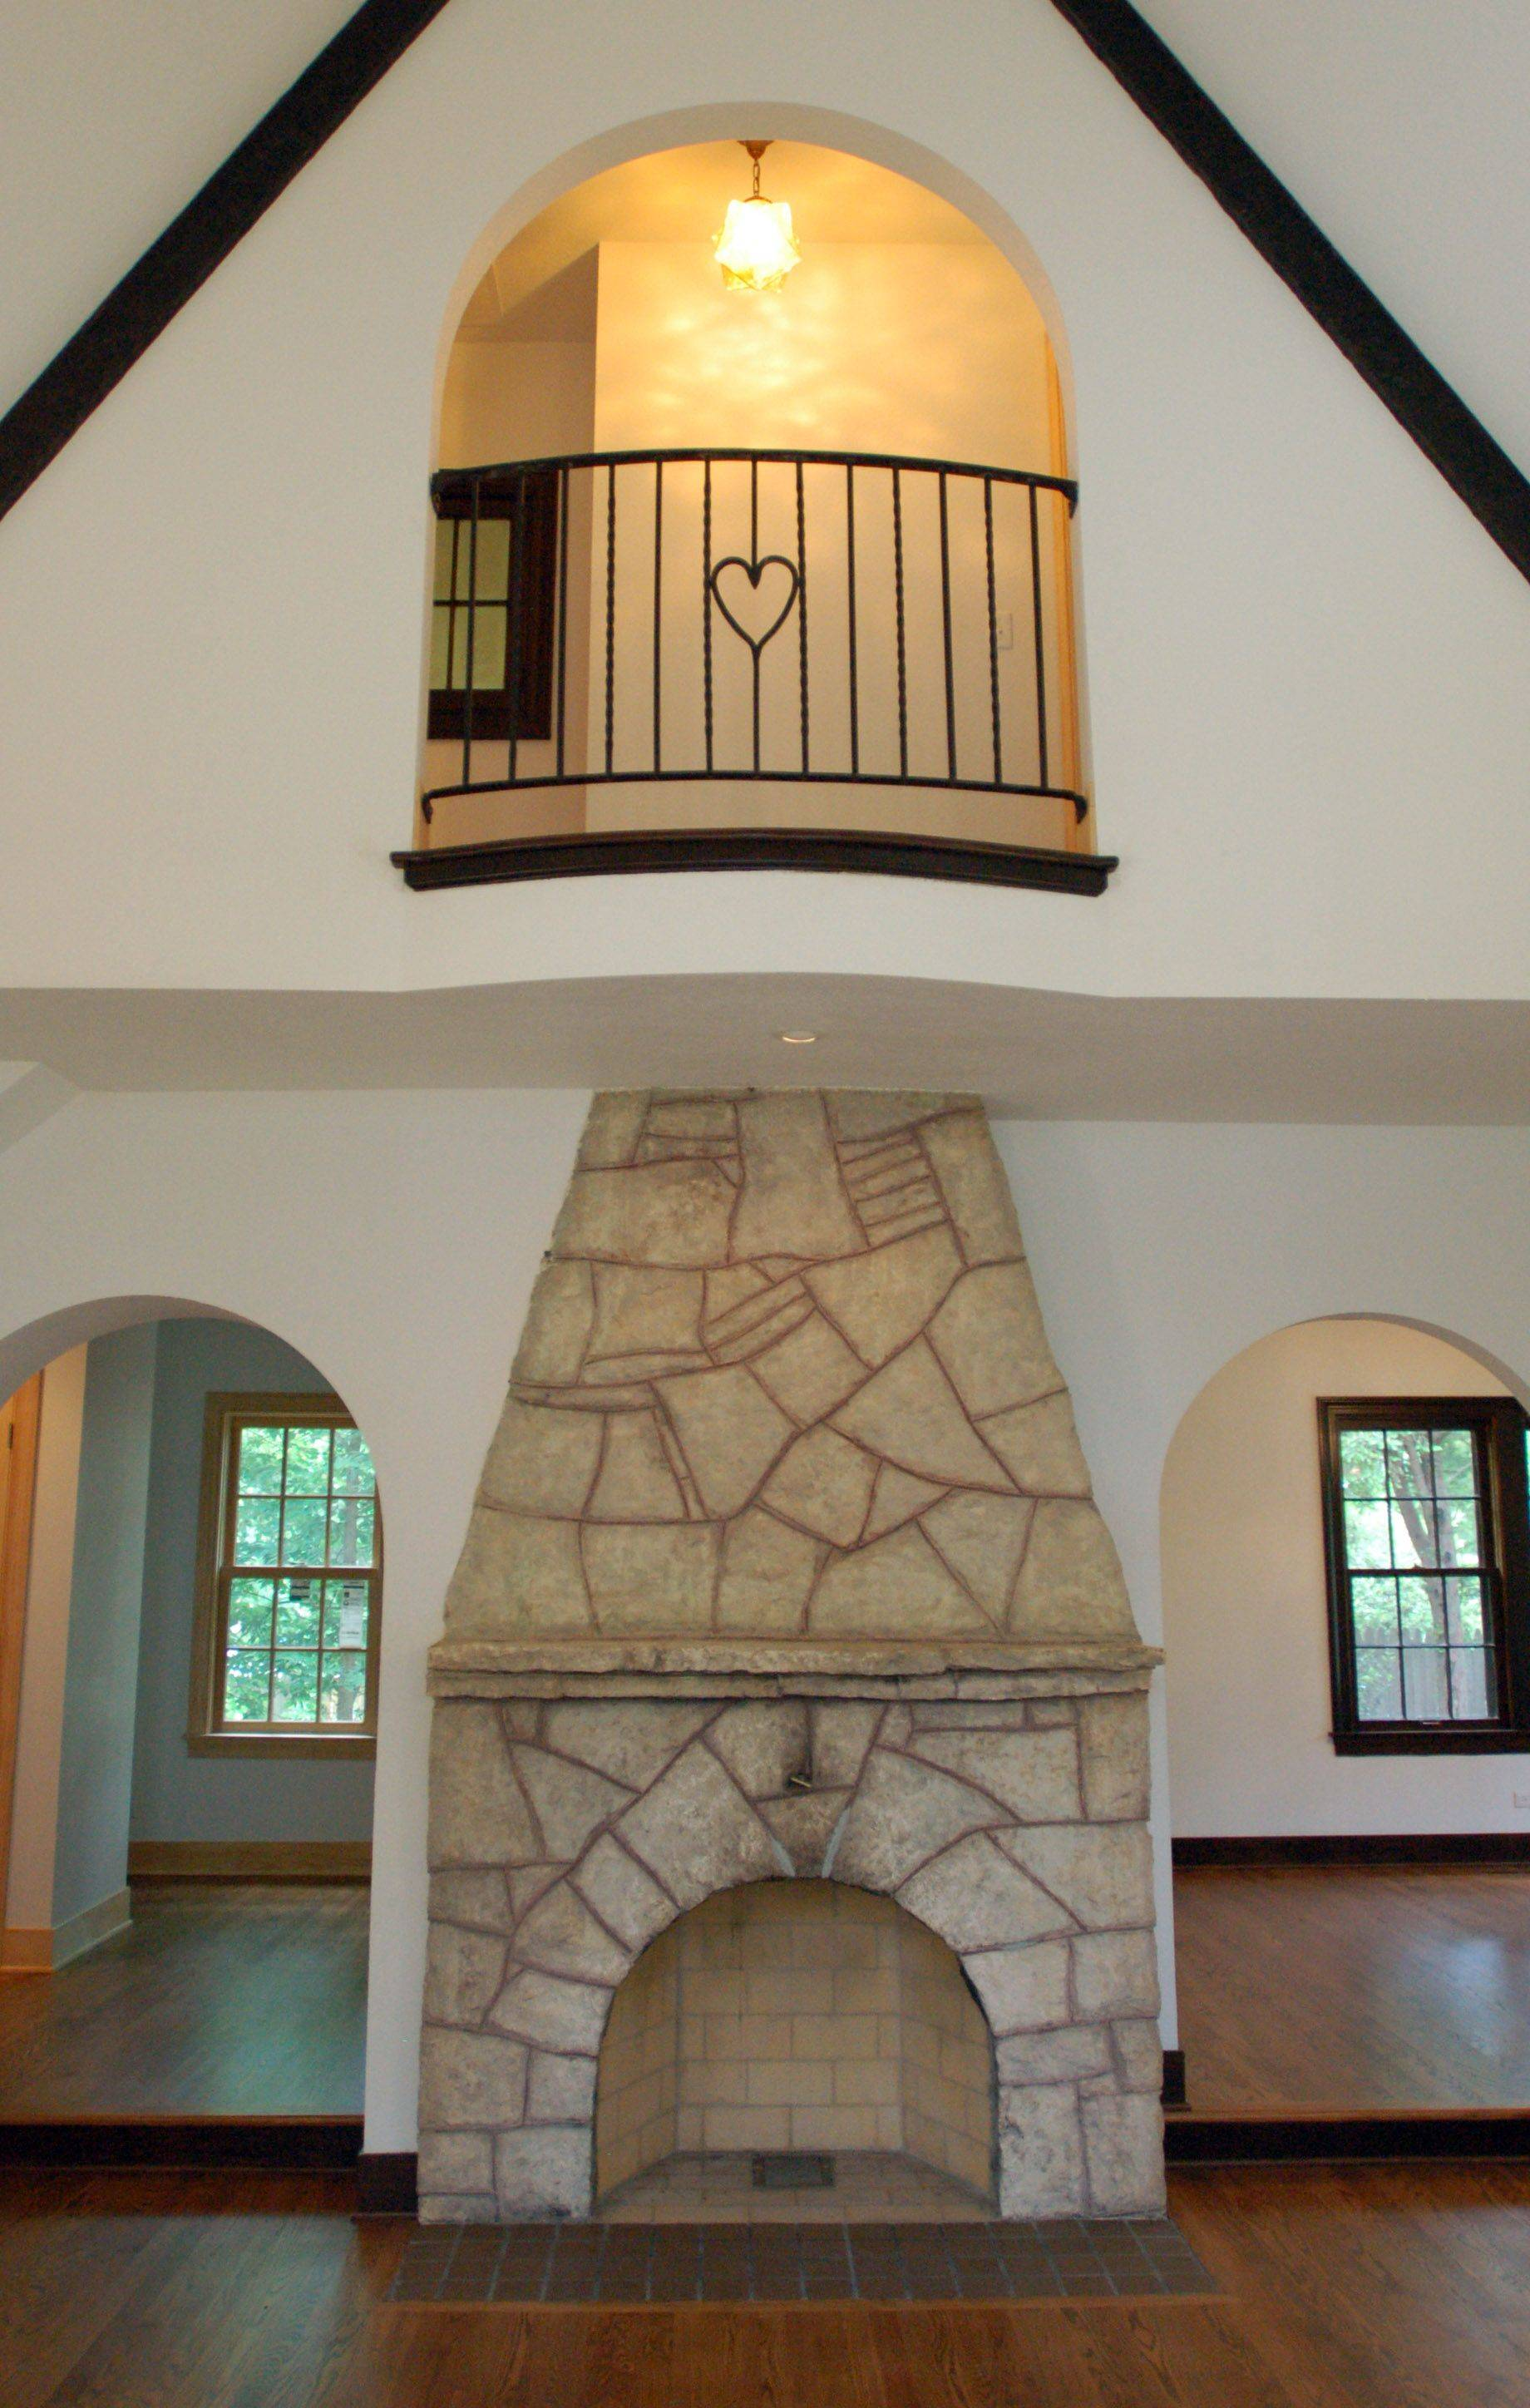 The project's goal was to make the house not only energy efficient, but marketably appealing for a modern-day family. This is the original fireplace.